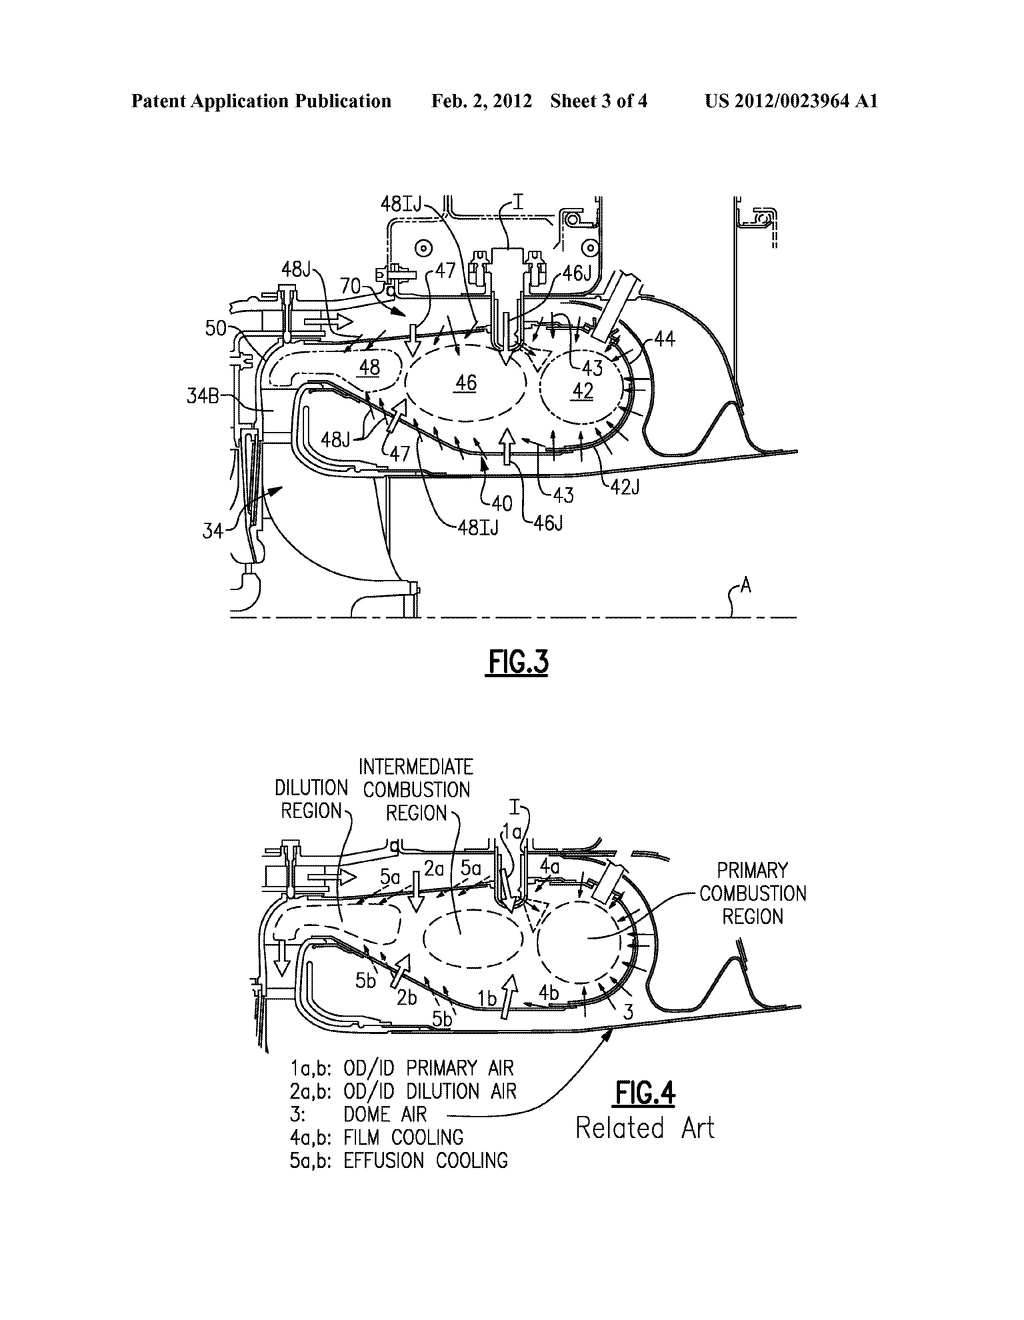 Liquid Engine Diagram Fueled Premixed Reverse Flow Annular Combustor For A Gas Turbine Schematic And Image 04